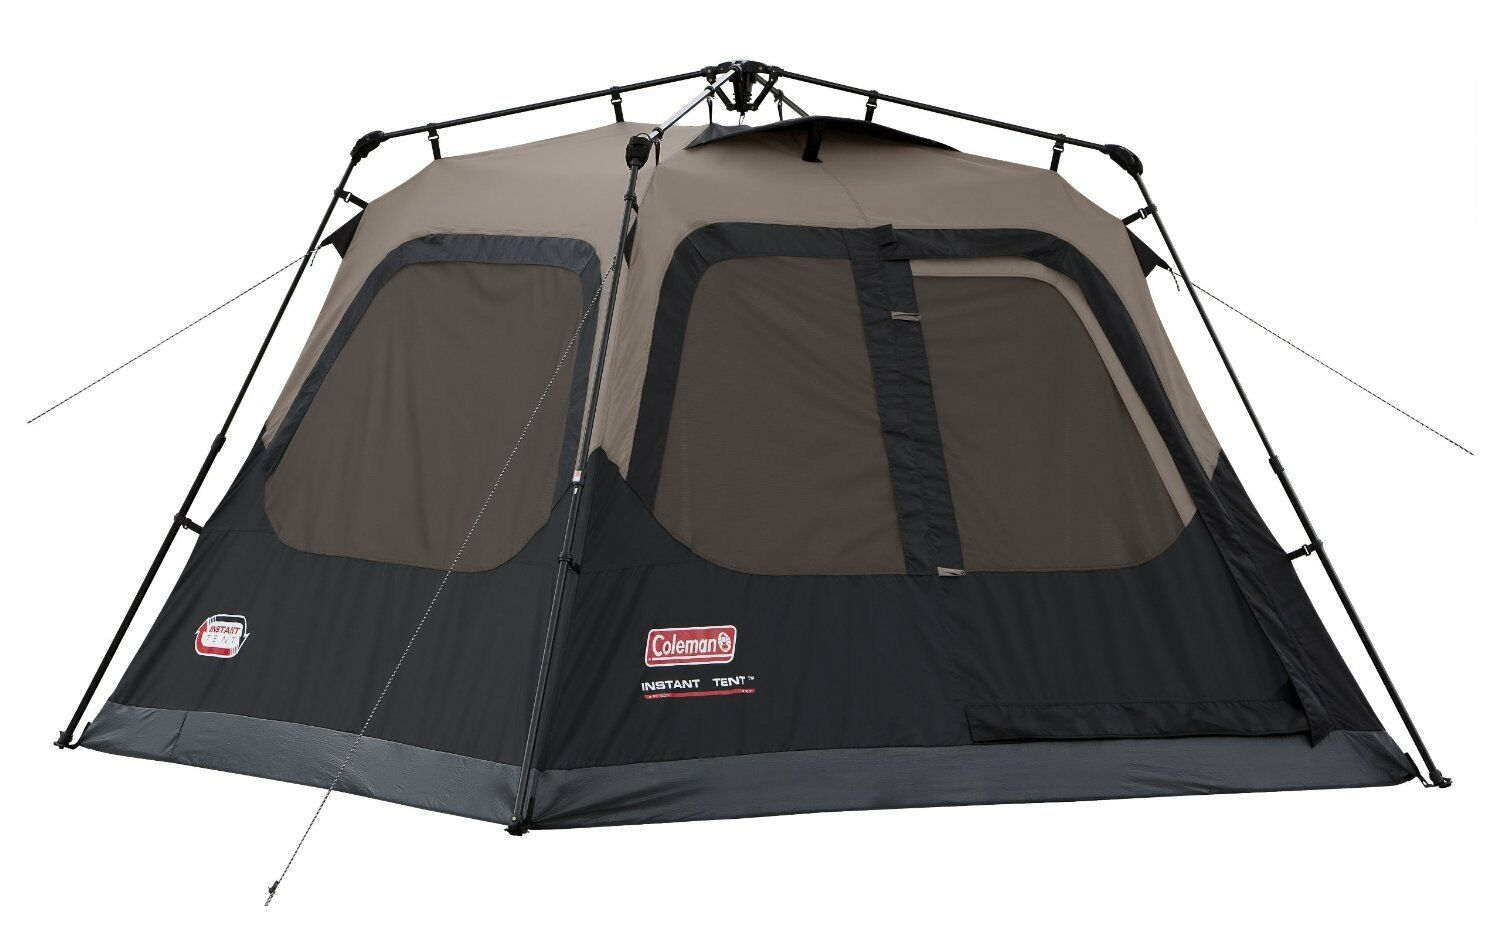 New and Sealed  Coleman Instant Tent (4 person) on sale and top rated